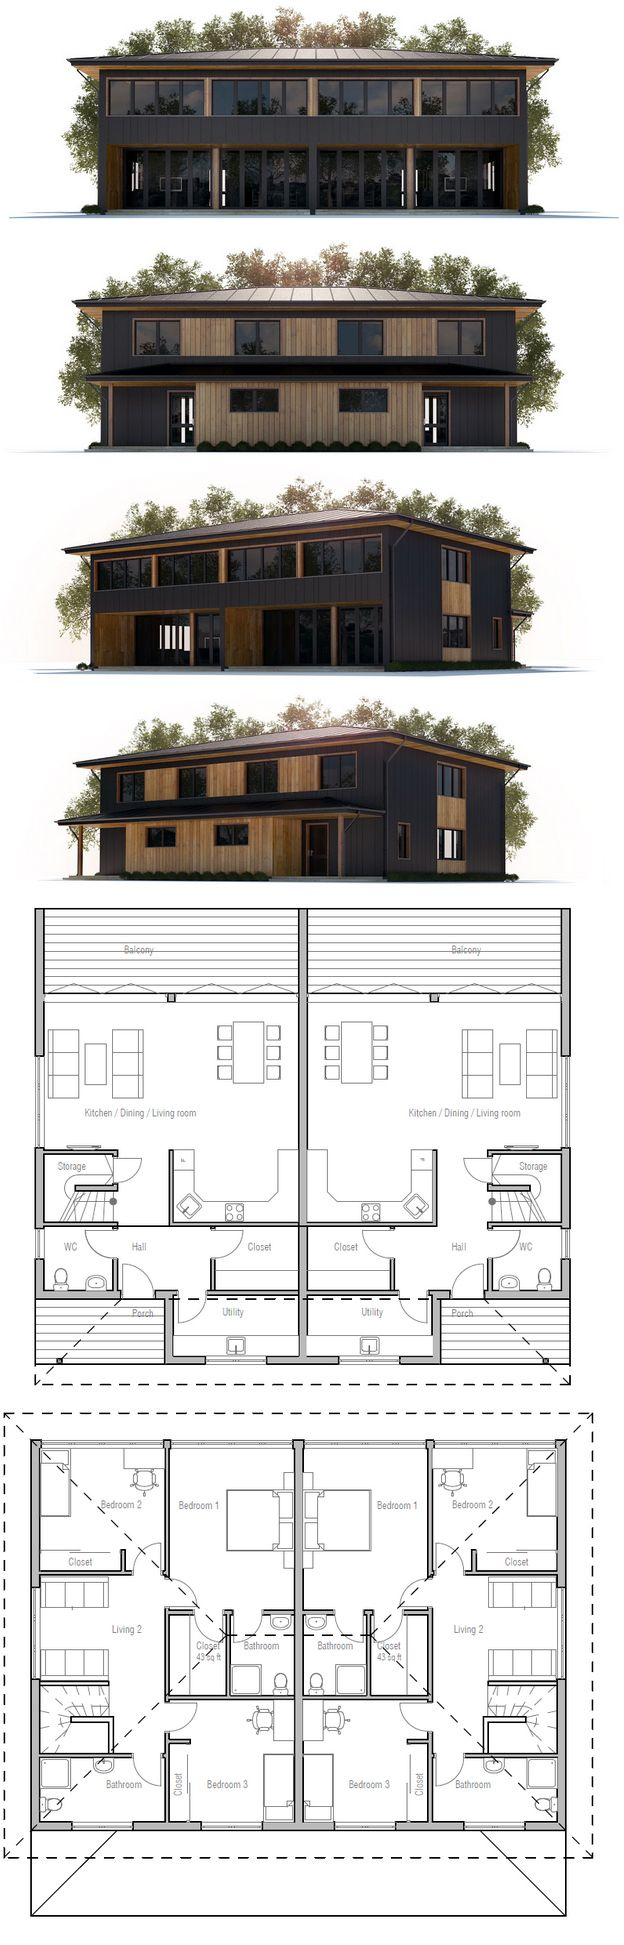 17 best ideas about duplex house plans on pinterest one for Plan maison duplex